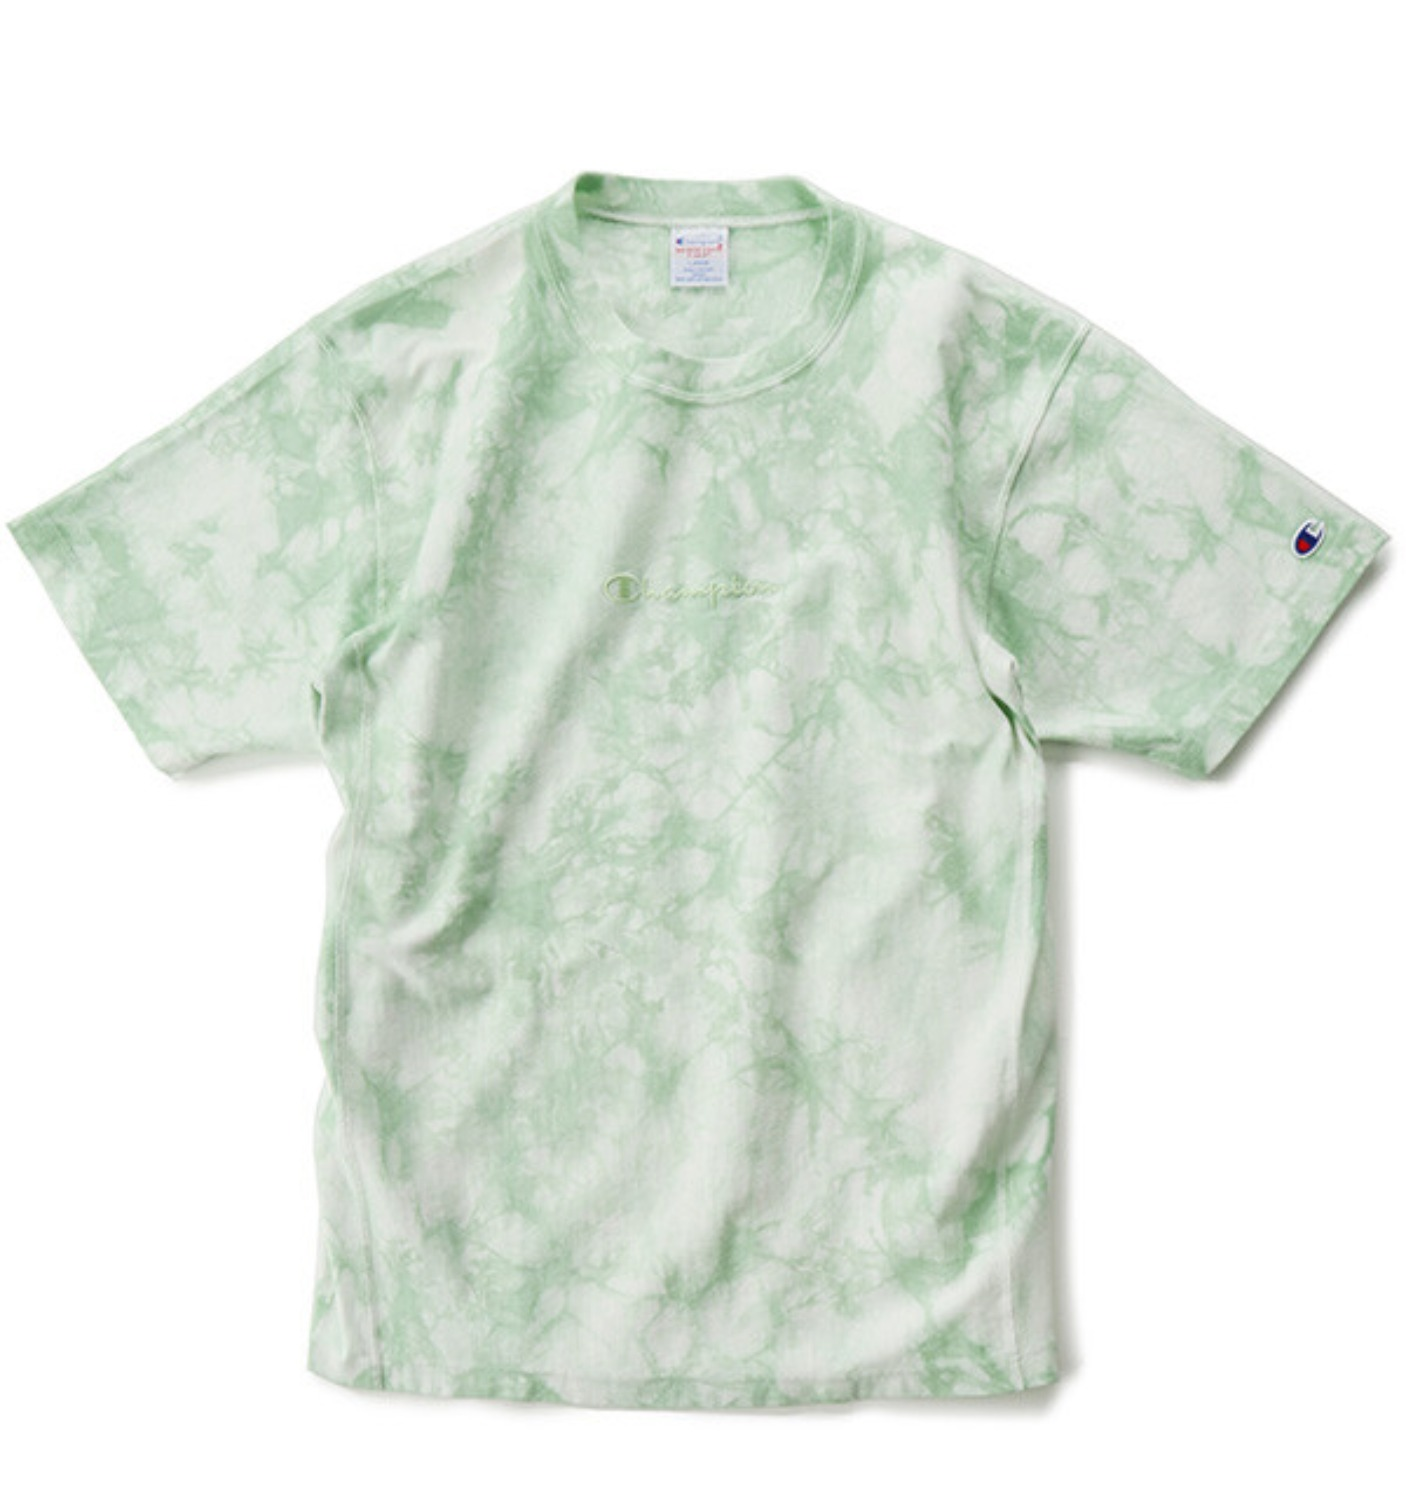 REVERSE WEAVE 9.4OZ TIE DYE T SHIRT GREEN